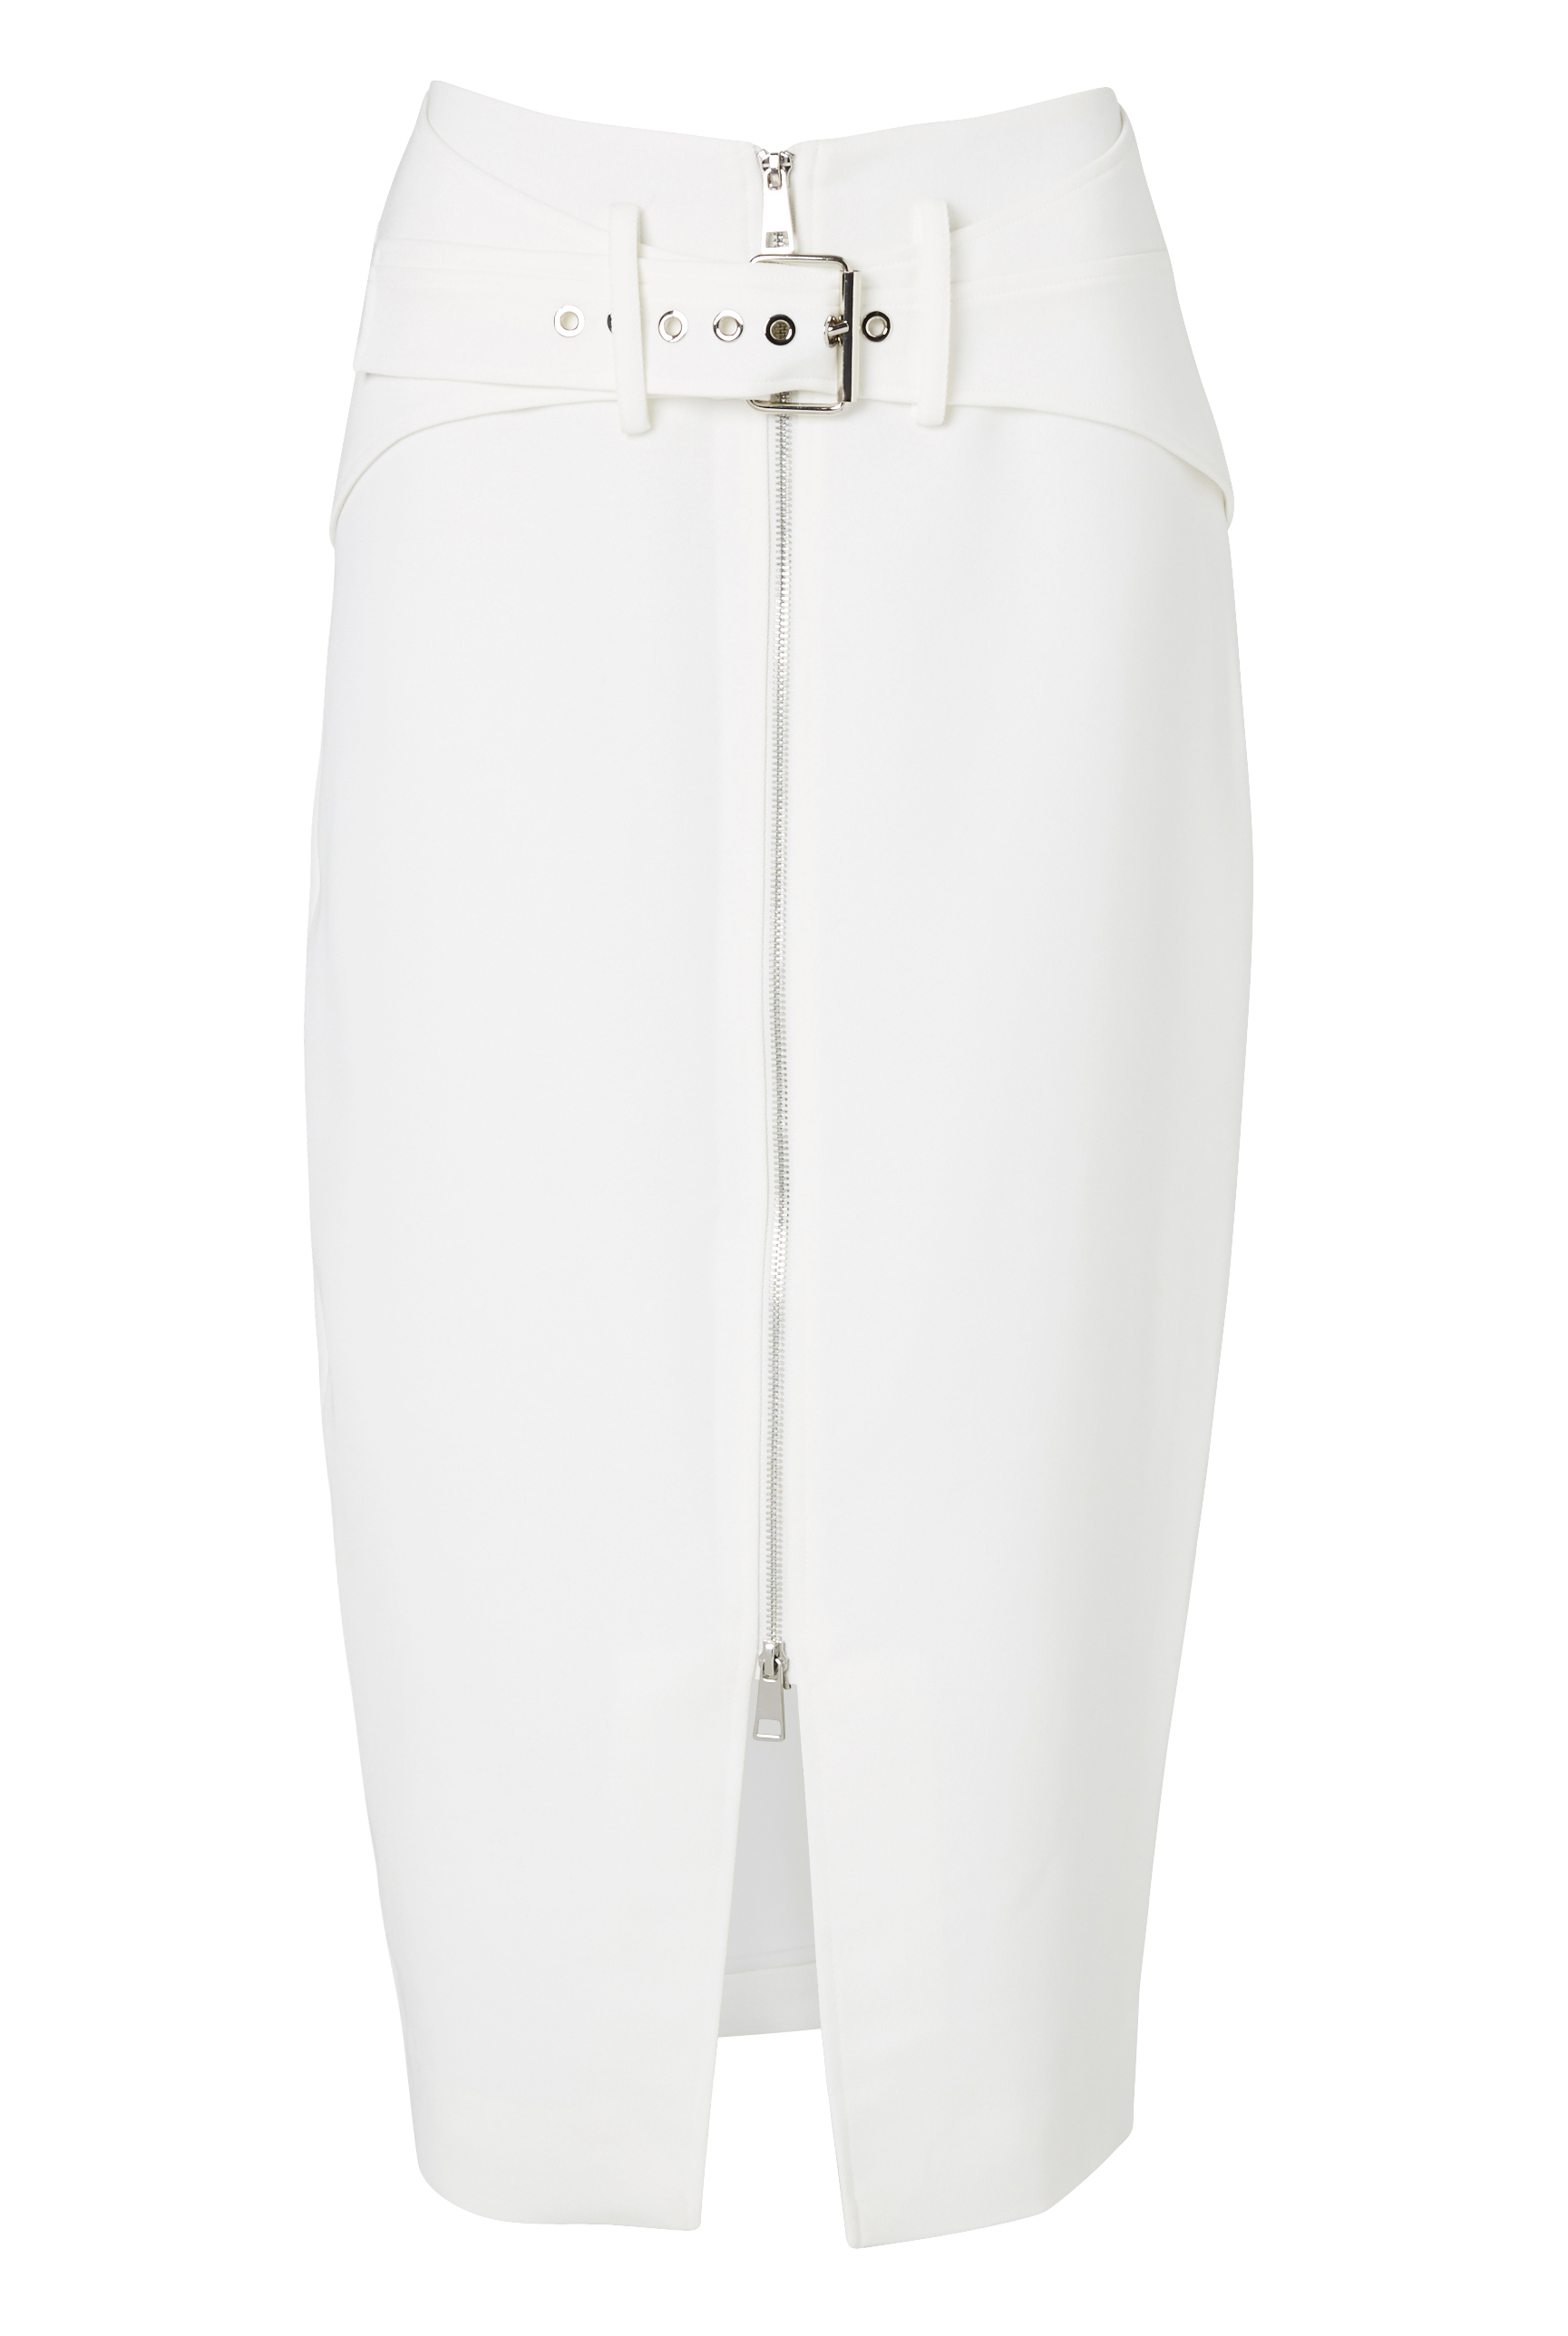 60189969_Witchery First Edition Rewa Belted Skirt, RRP$209.90